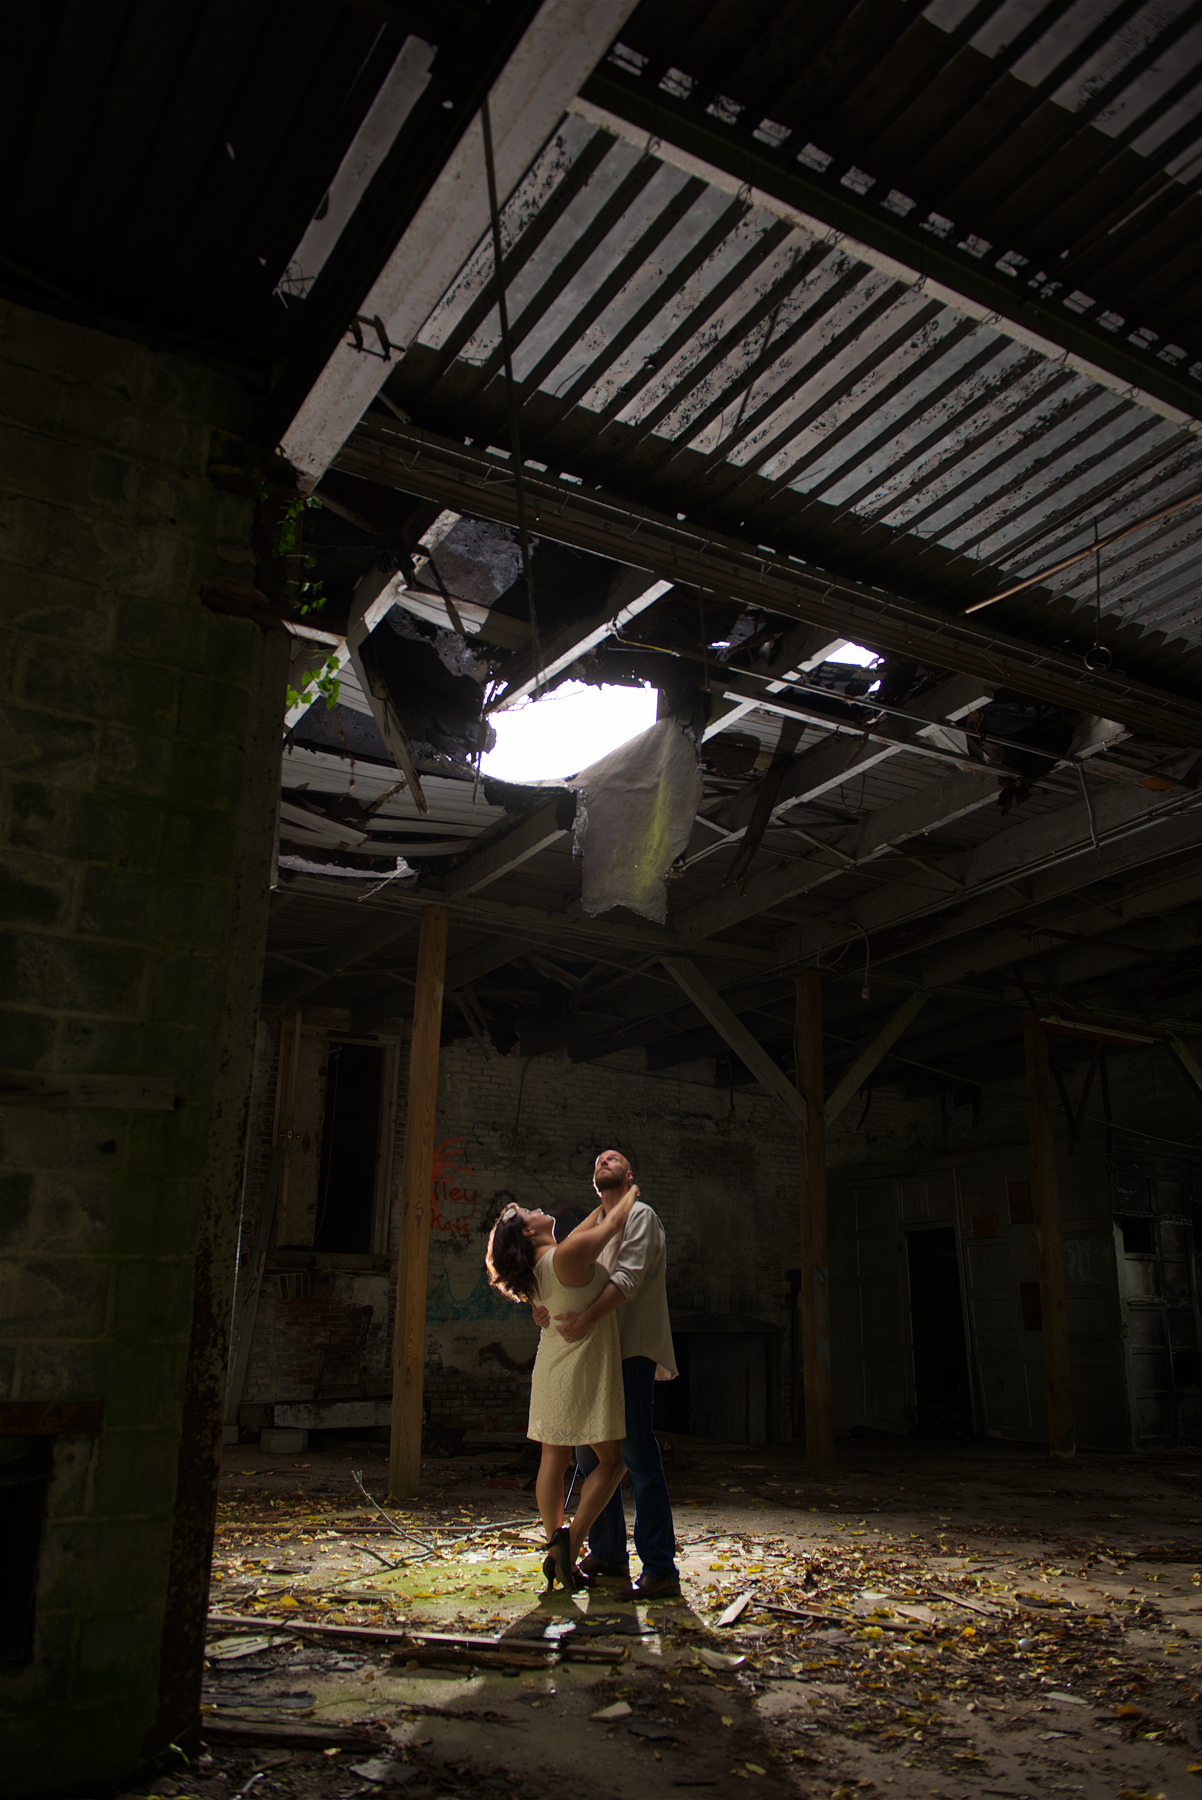 How cool is this!? That hole in the ceiling was perfect for some dramatic light. I loved it.